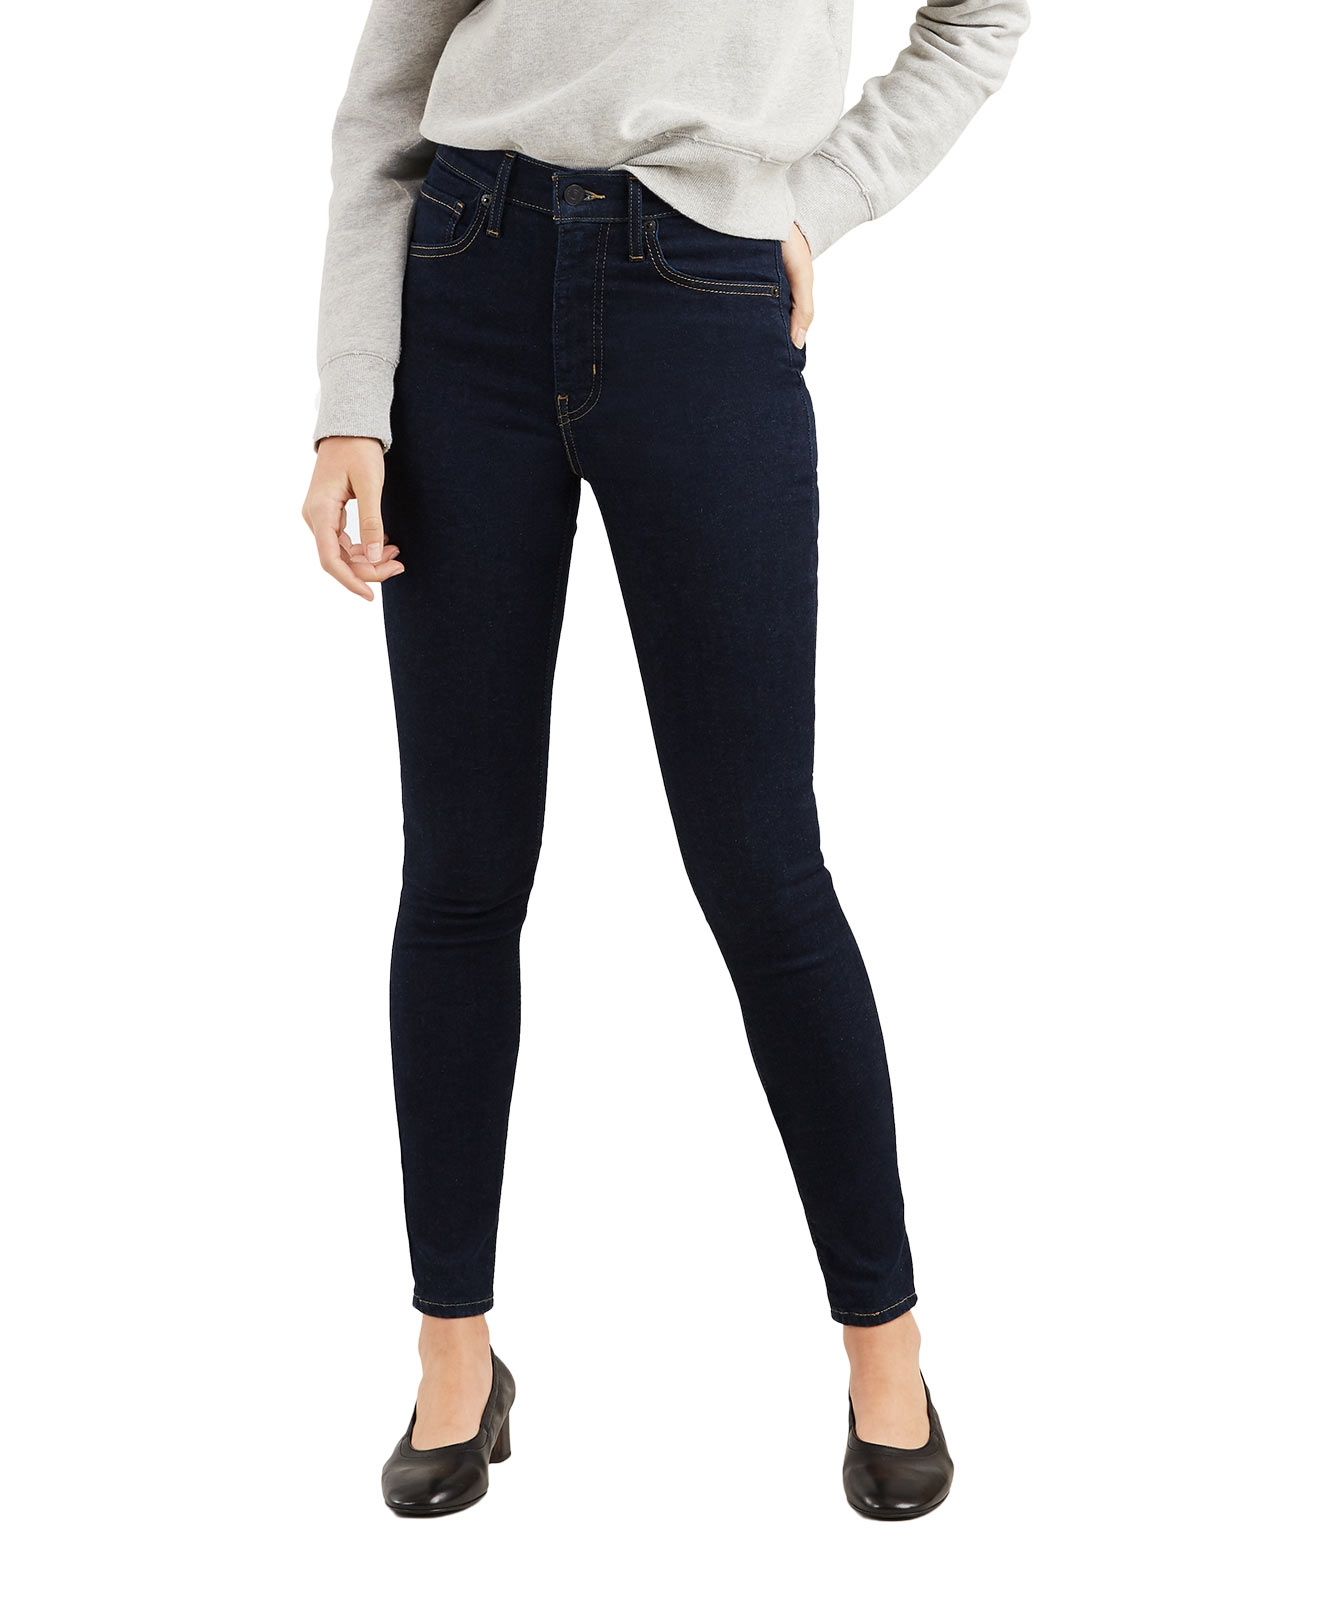 Hosen - Levi's Mile High Super Skinny Jeans in Rinsewash  - Onlineshop Jeans Meile